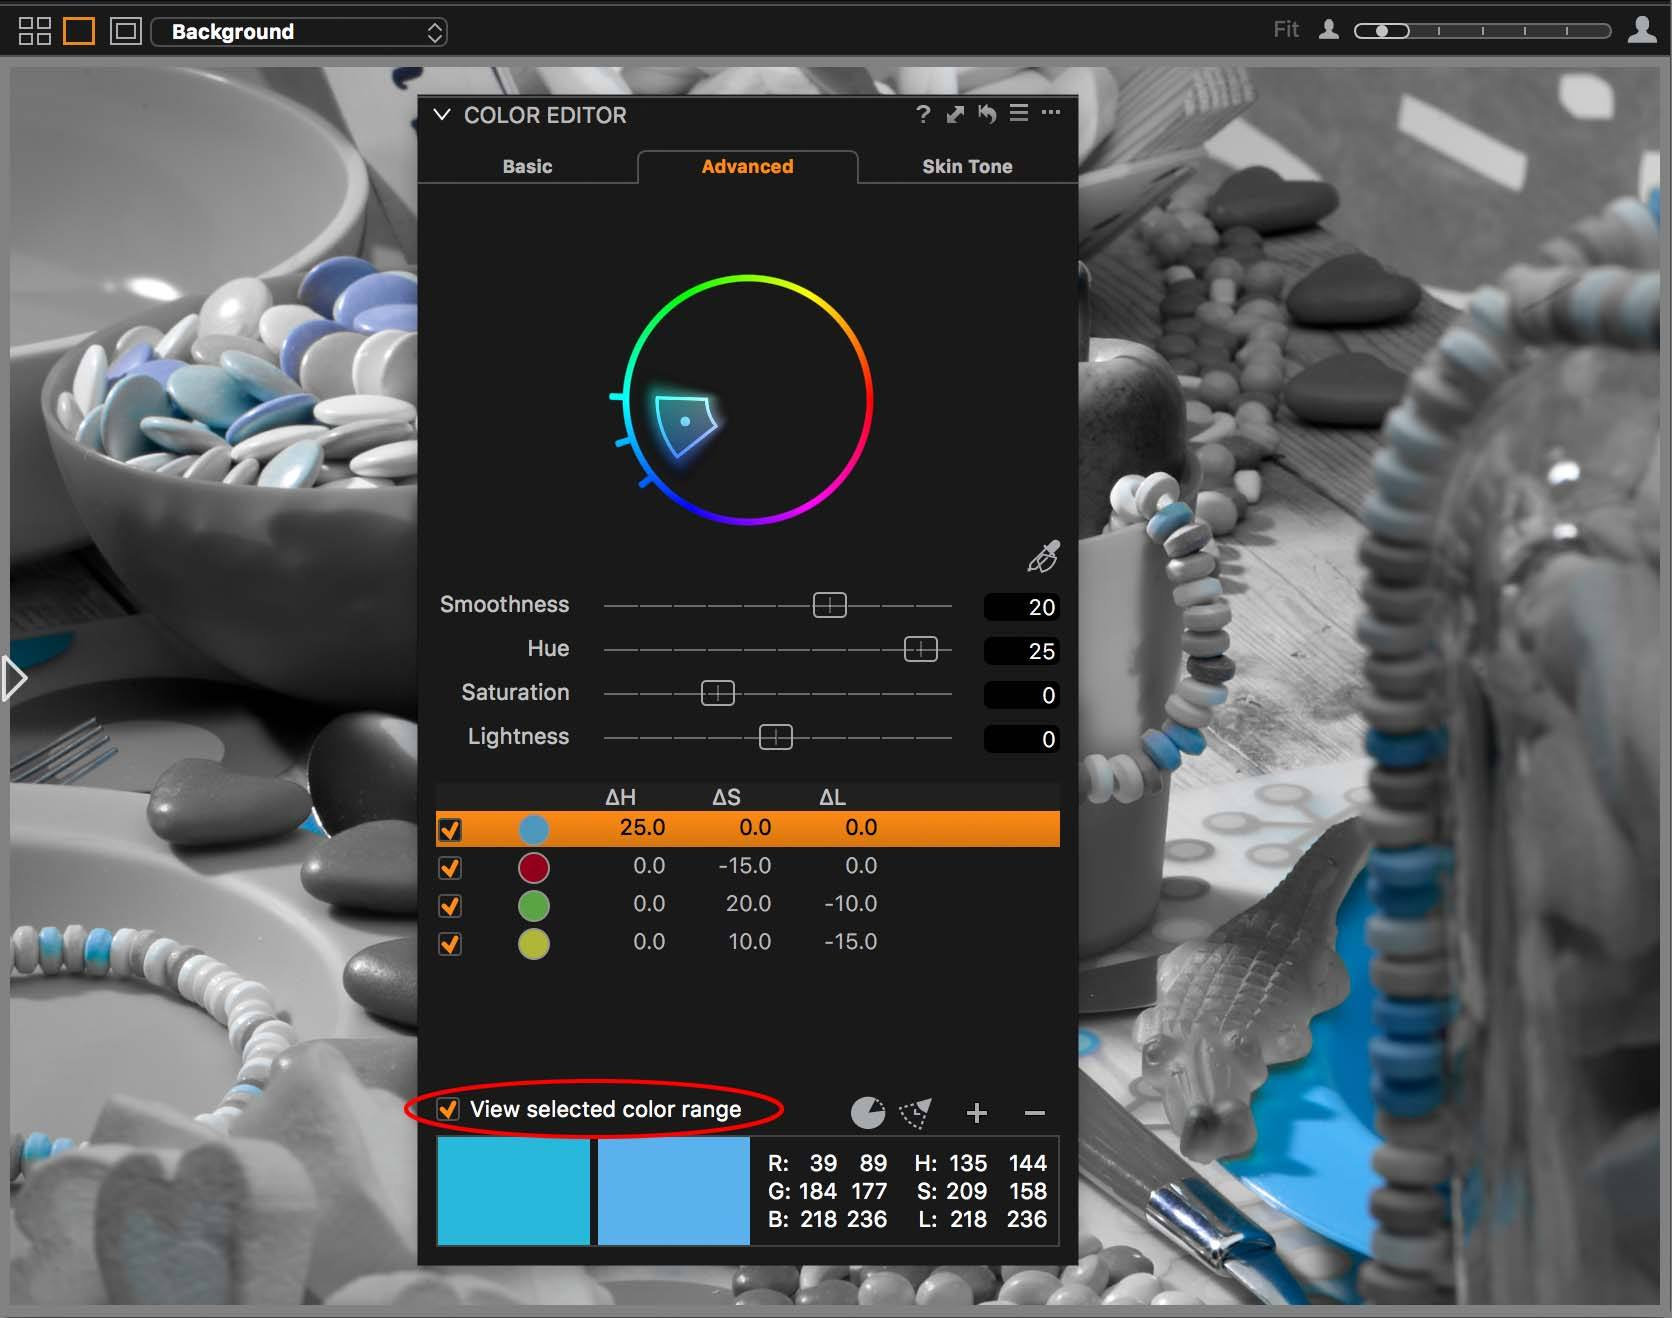 capture one color editor, advanced tab, view selected color range on